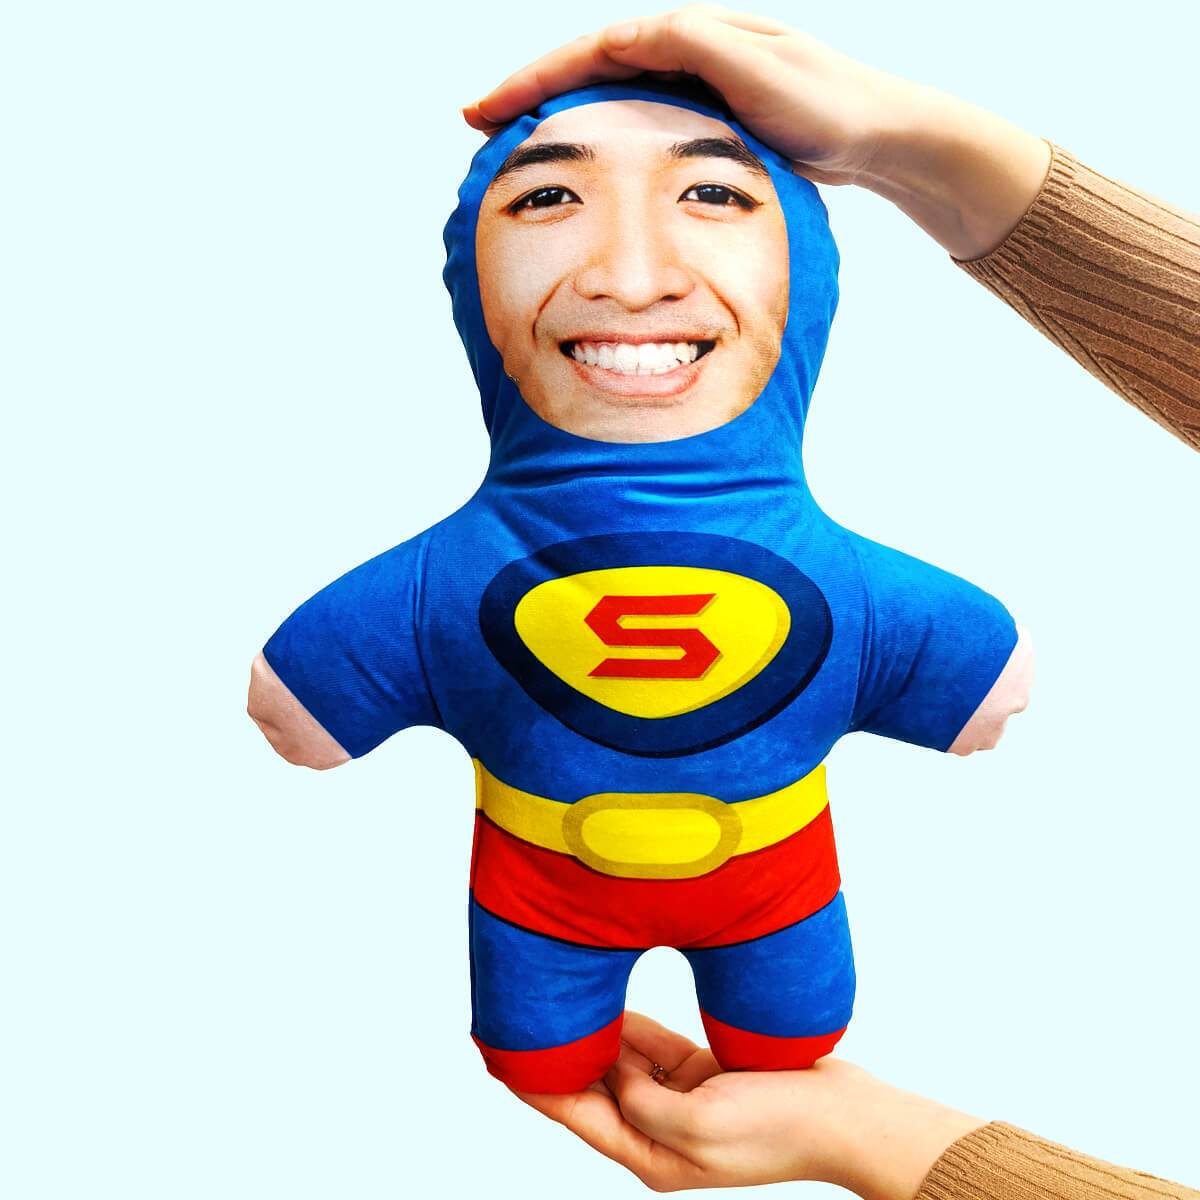 Mini Me - Superhero